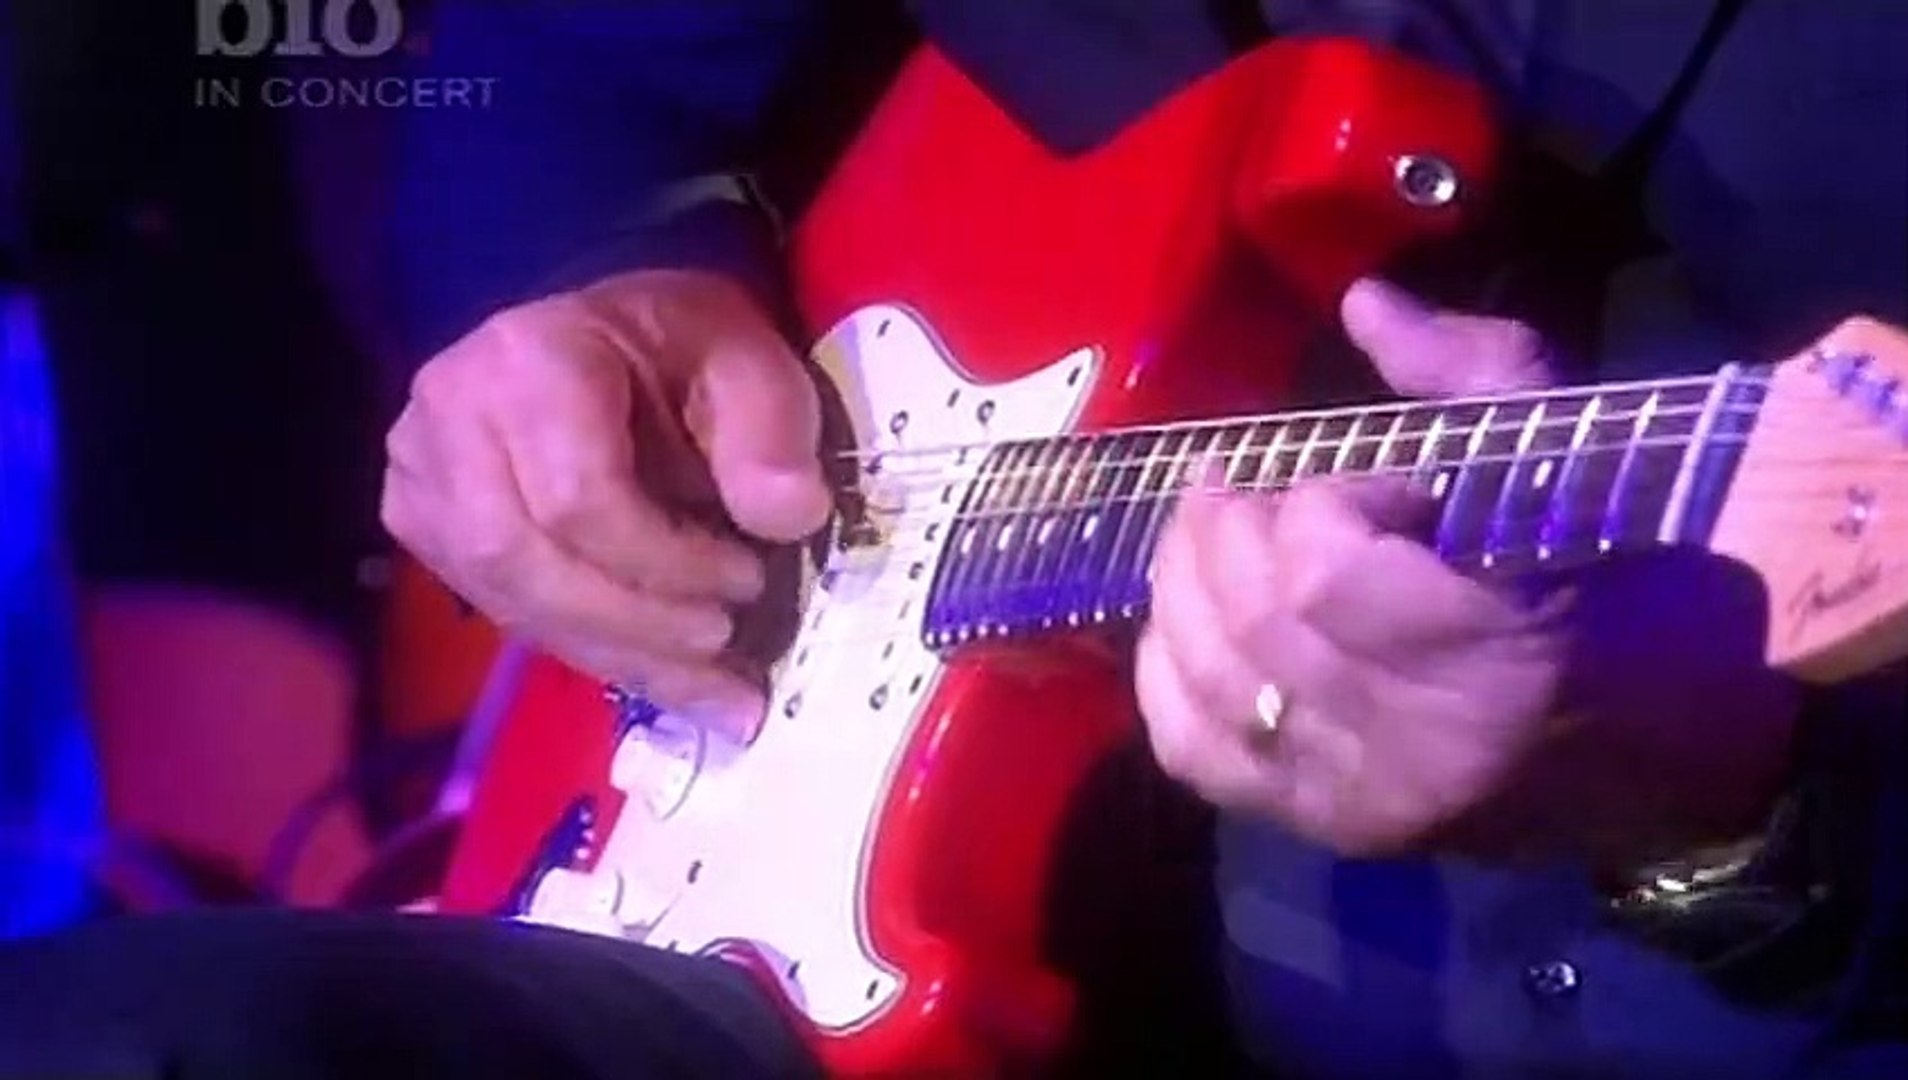 Sultans Of Swing Dire Straits Song Mark Knopfler Live Video Dailymotion